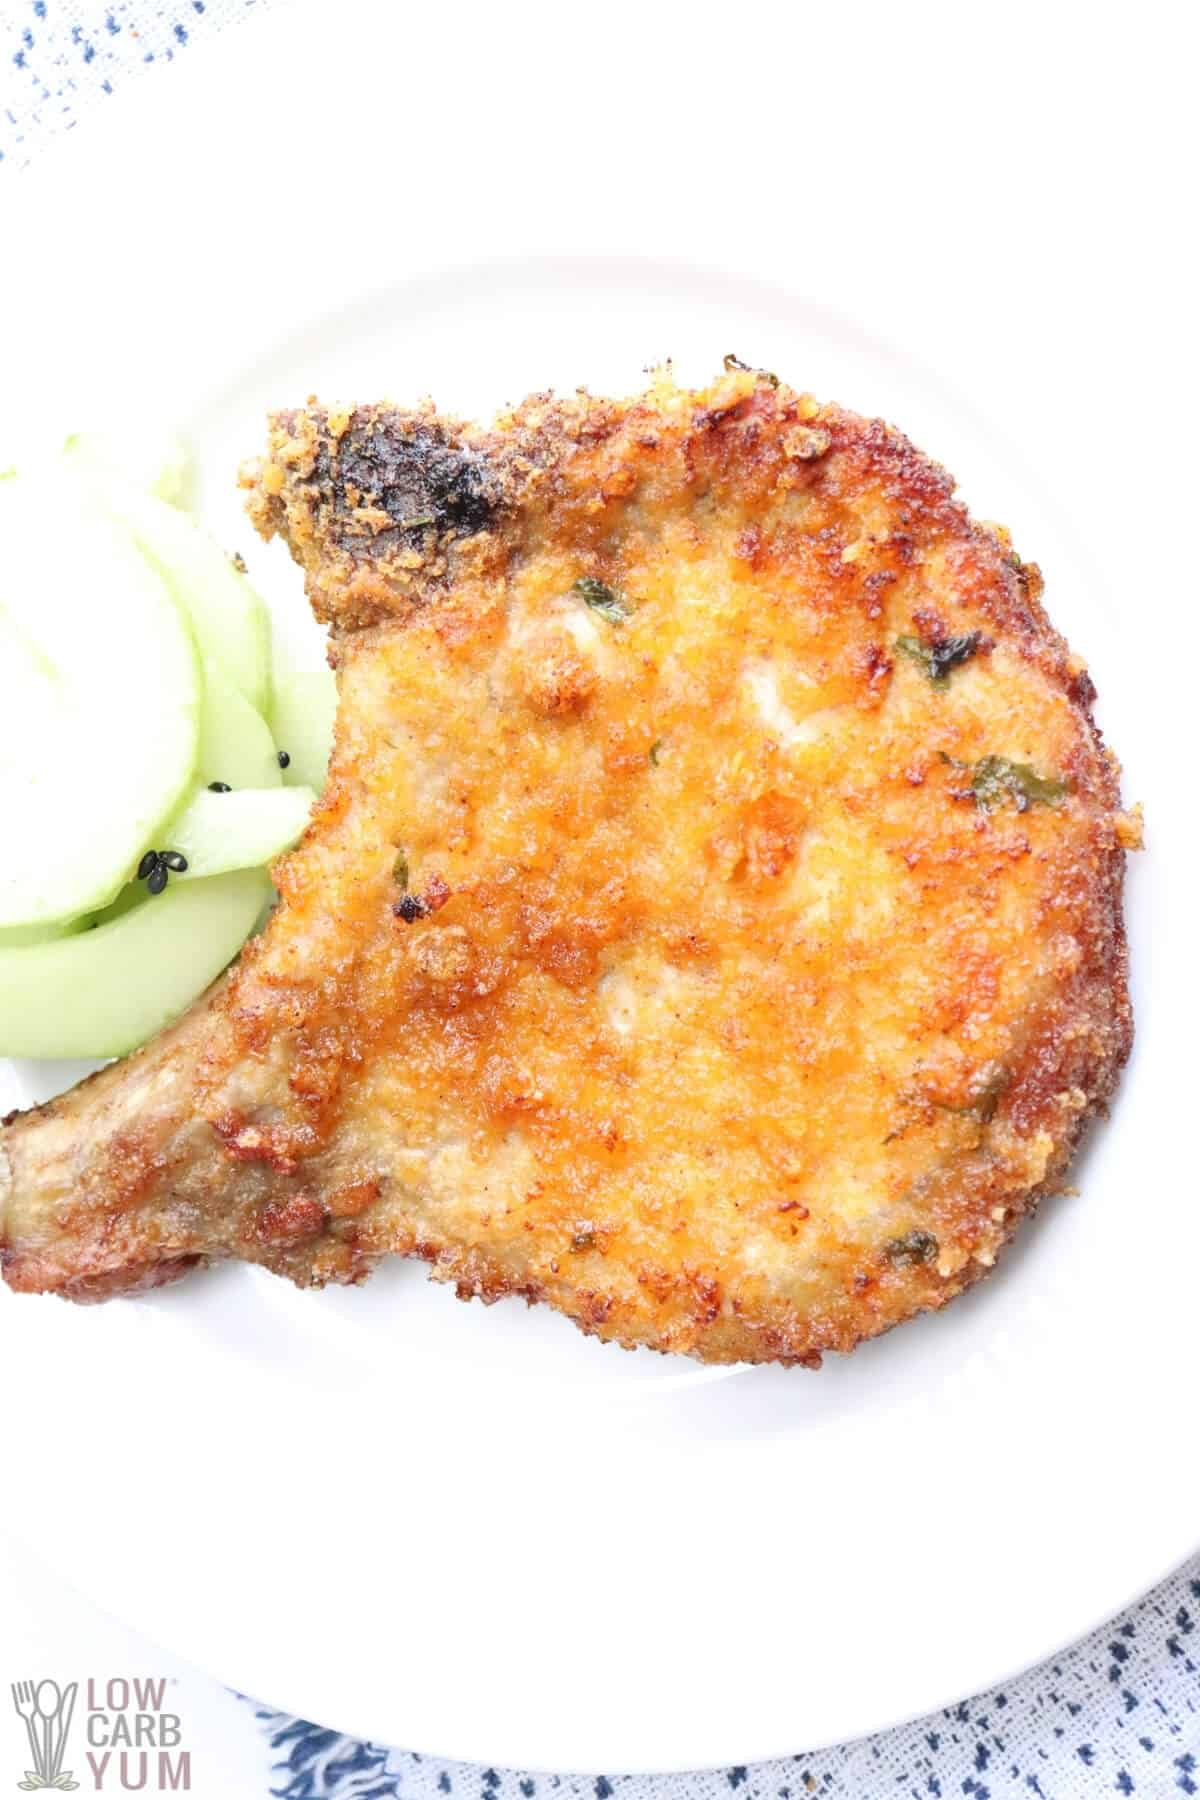 keto air fryer pork chop on white plate with cucumber salad